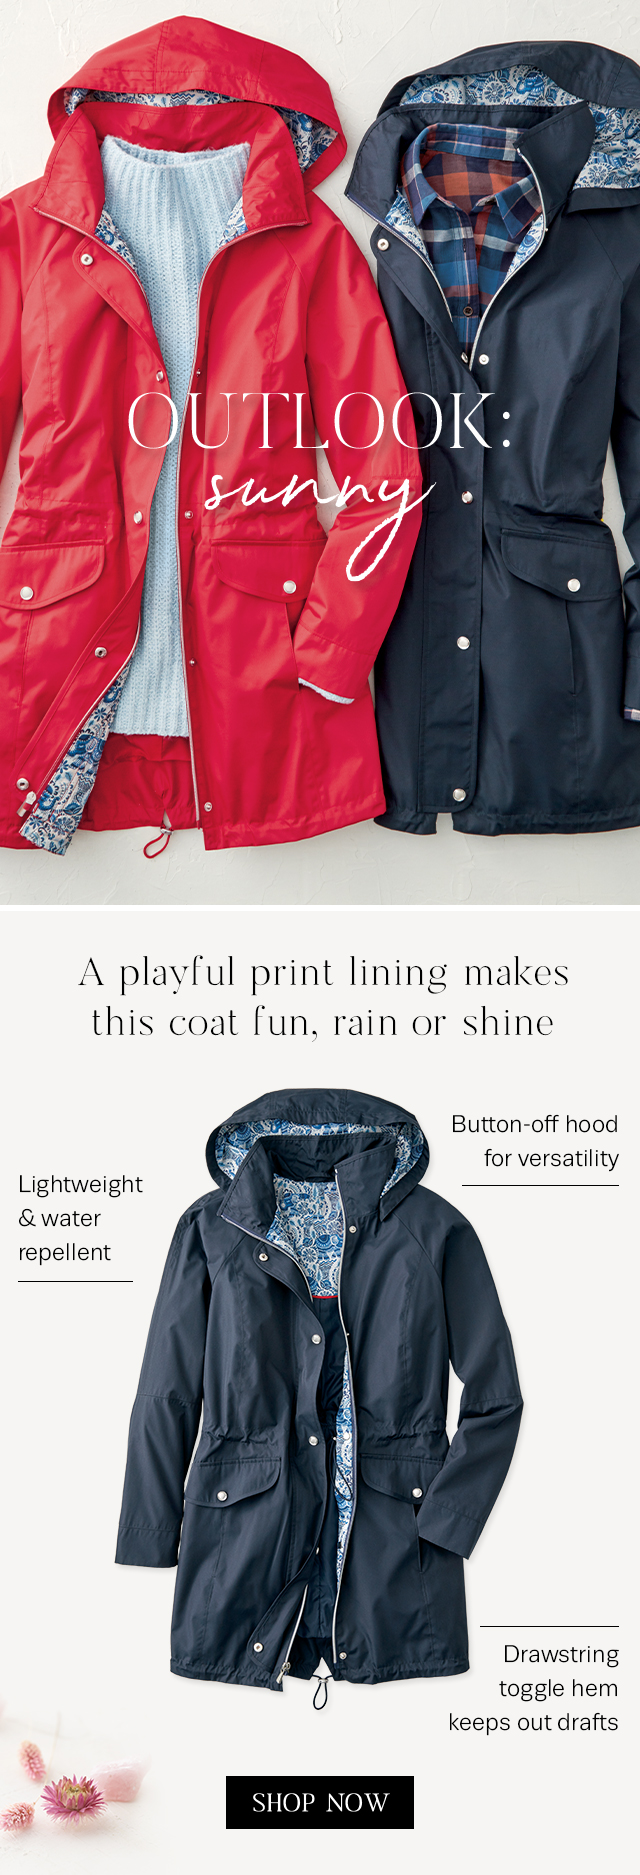 Check out our new raincoats with playful print linings!